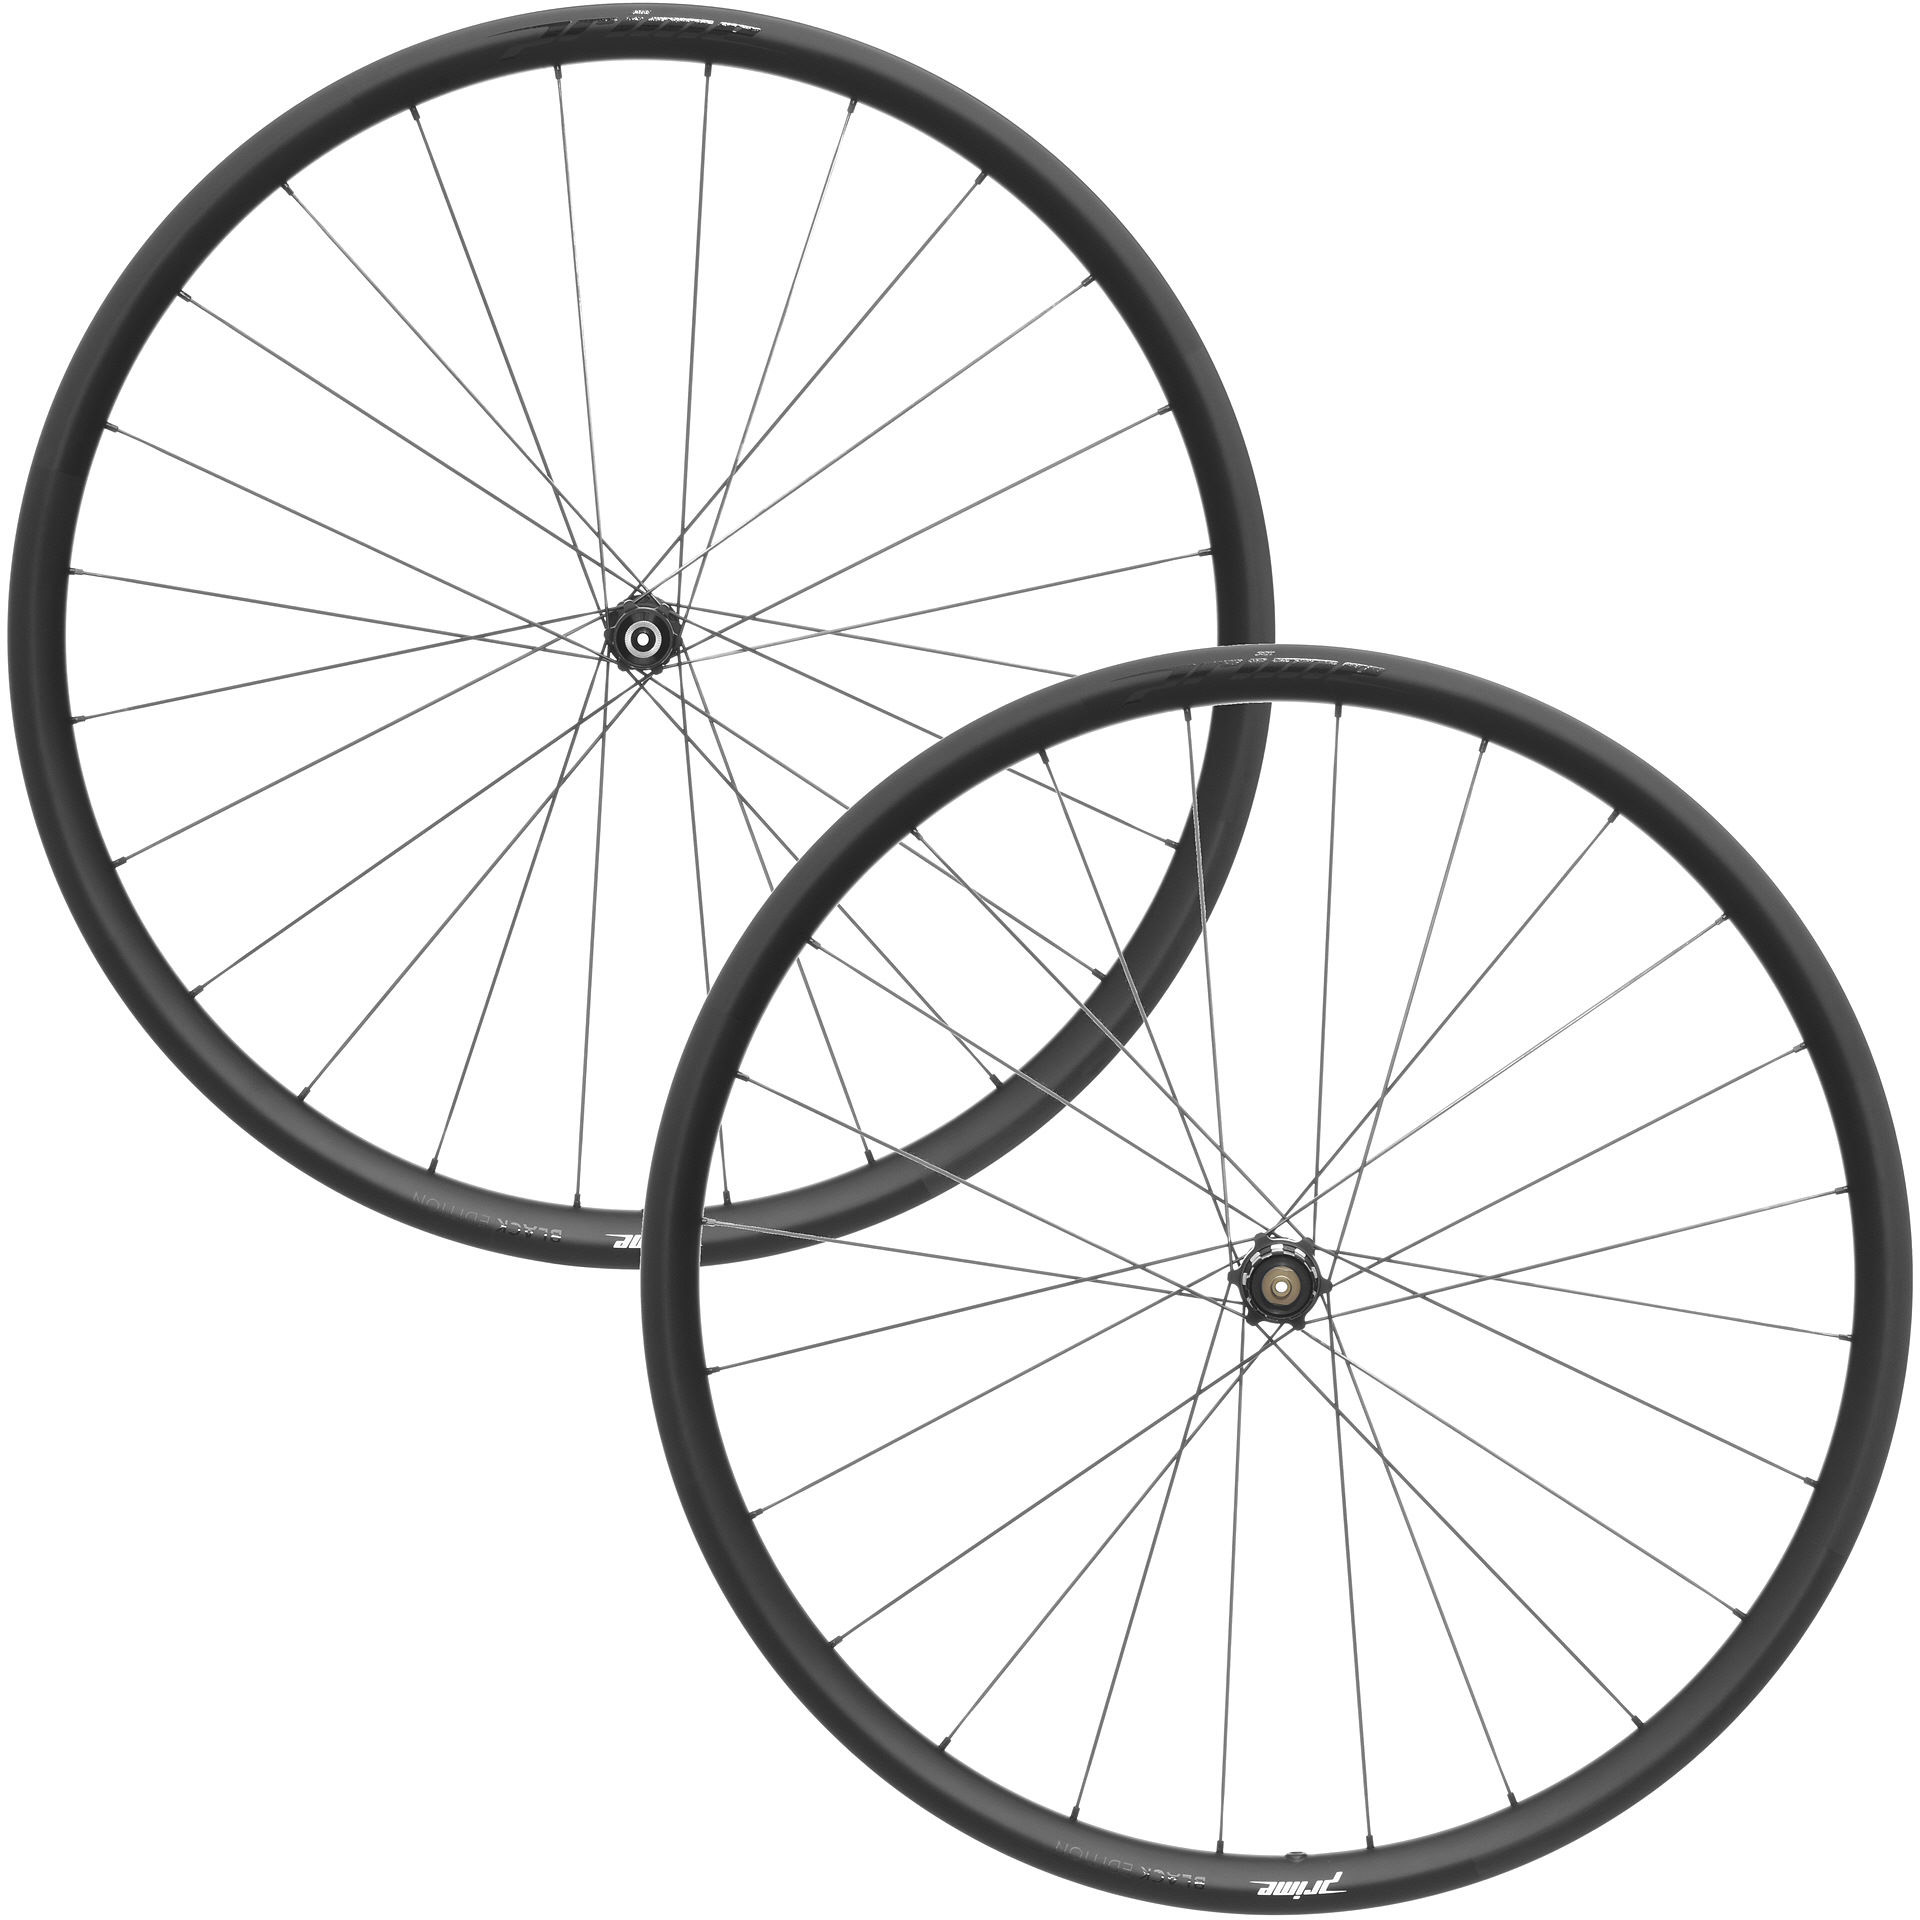 Prime BlackEdition 28 Carbon Disc Wheelset | Wheelset